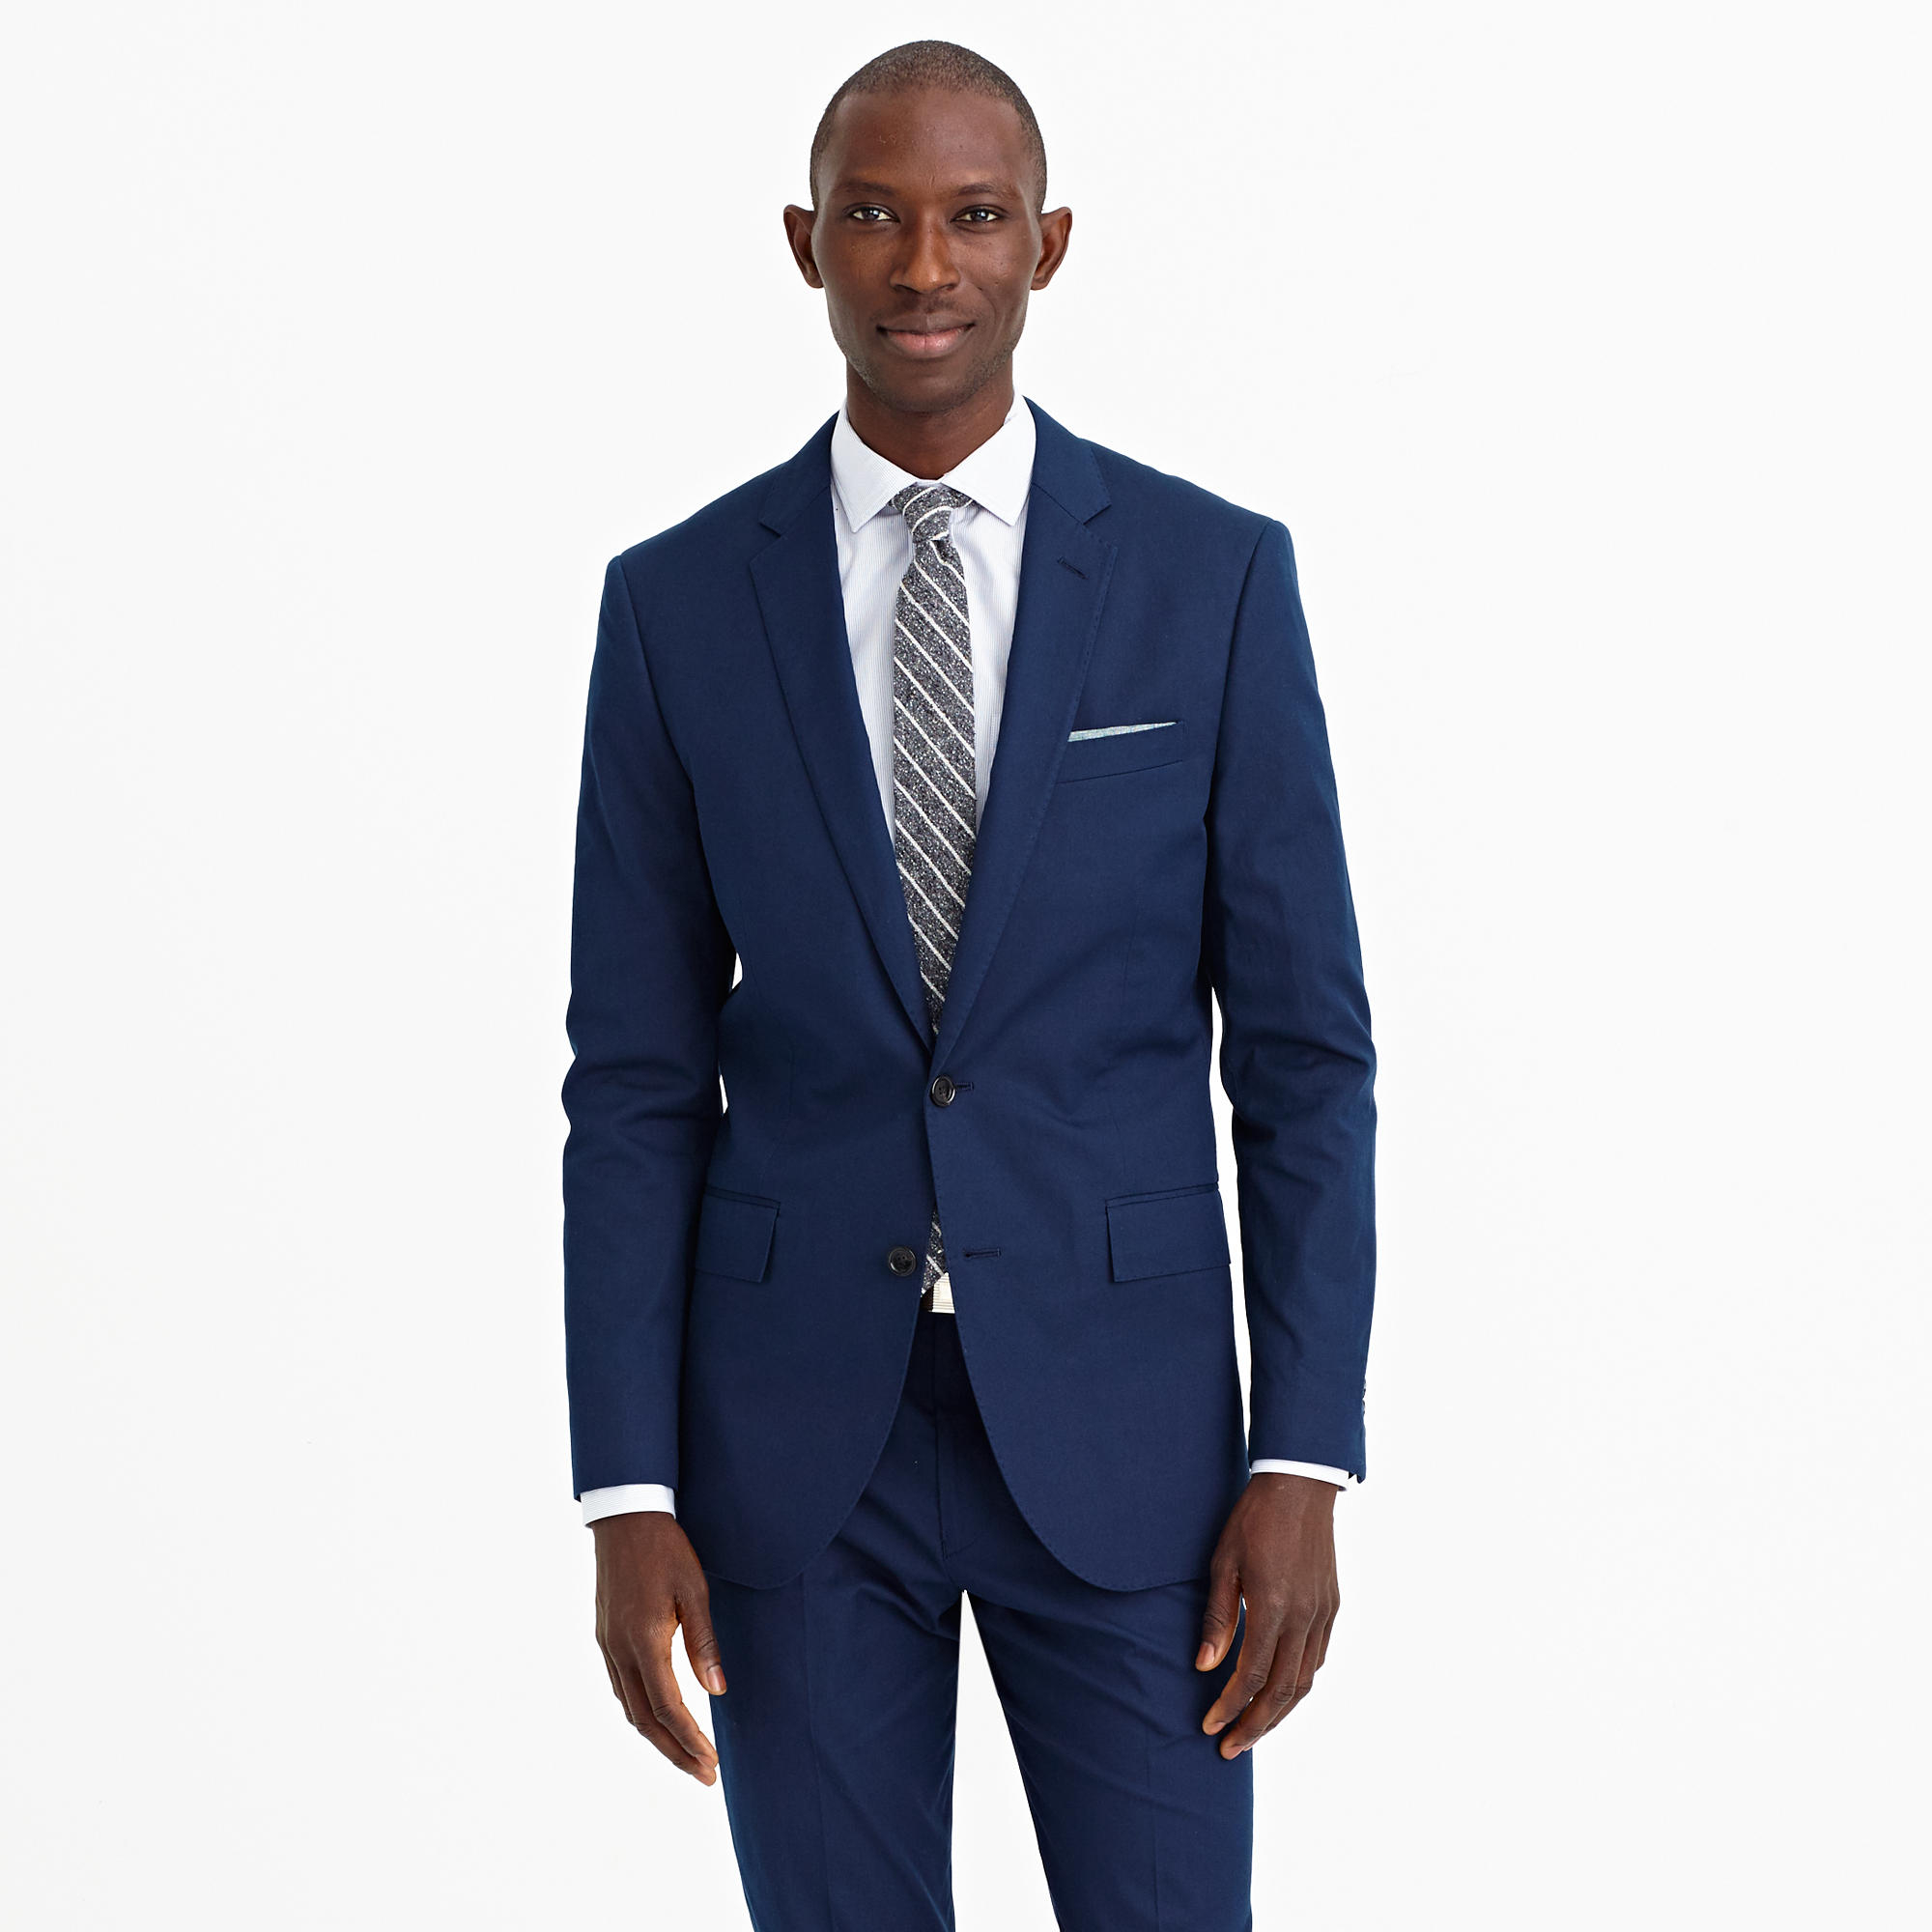 J.crew Ludlow Suit Short In Italian Cotton Piqué in Blue for Men